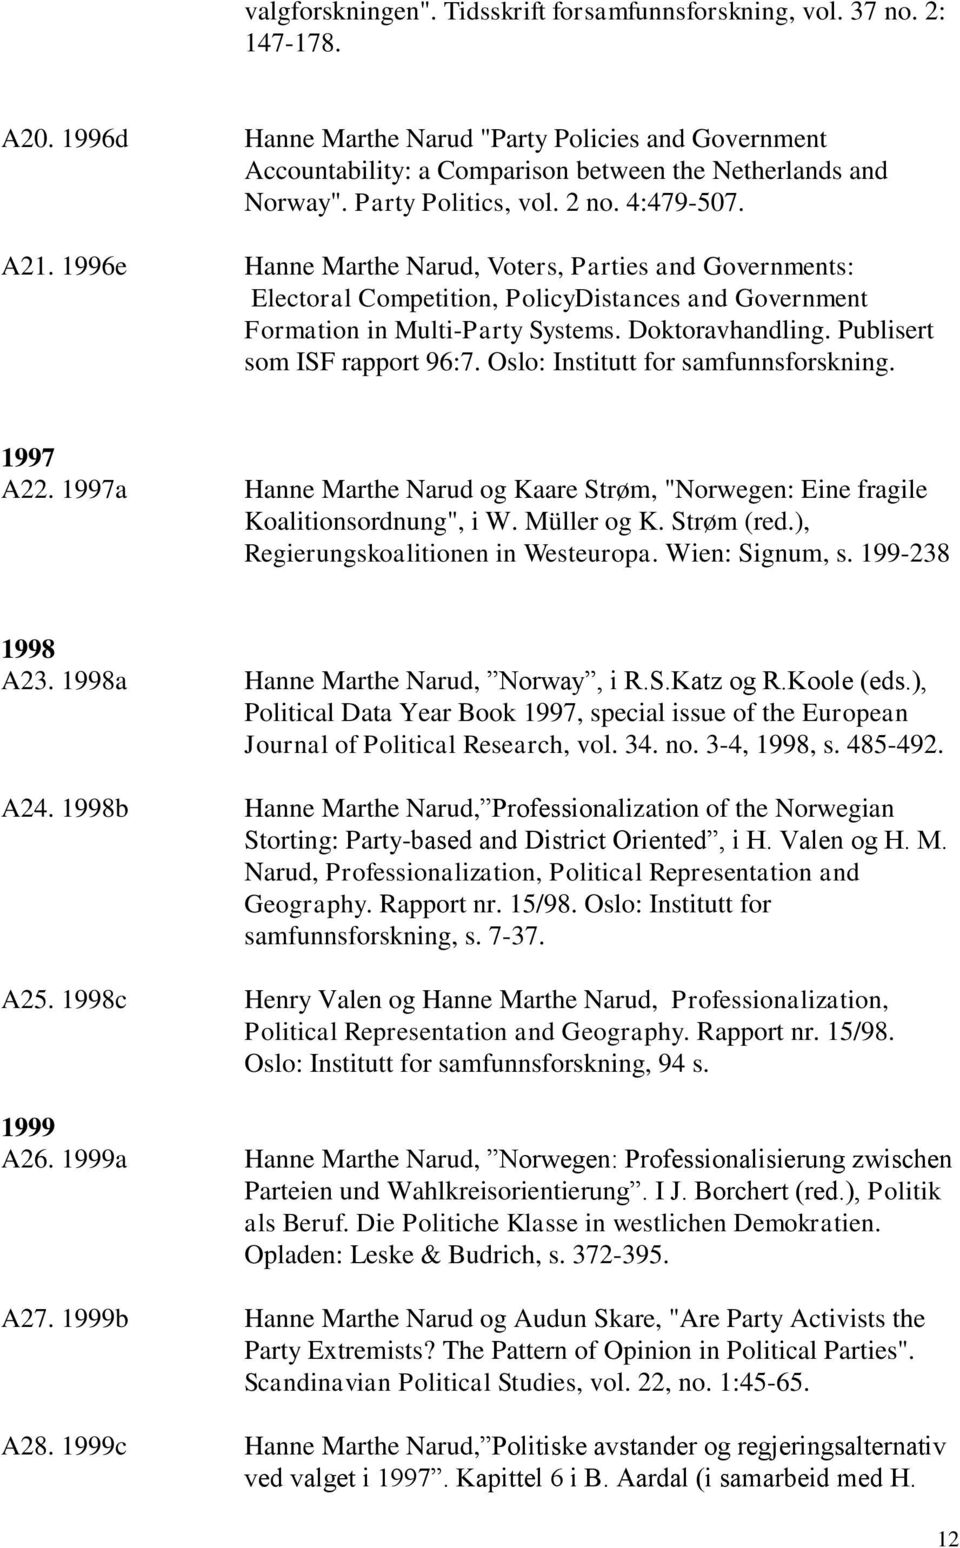 1996e Hanne Marthe Narud, Voters, Parties and Governments: Electoral Competition, PolicyDistances and Government Formation in Multi-Party Systems. Doktoravhandling. Publisert som ISF rapport 96:7.